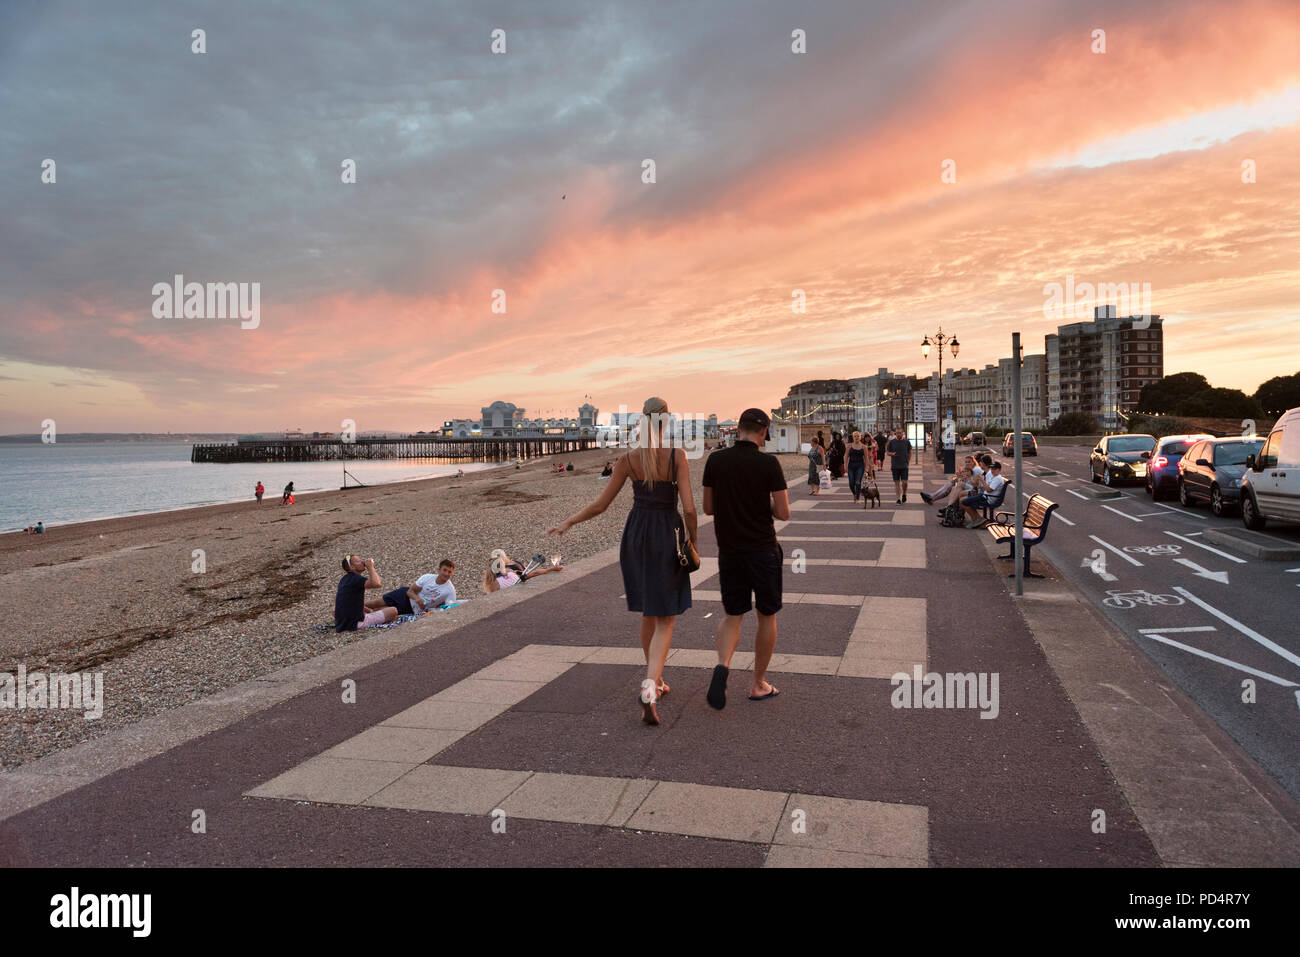 A Summer's evening on Southsea seafront during the heatwave of Summer 2018 - Stock Image